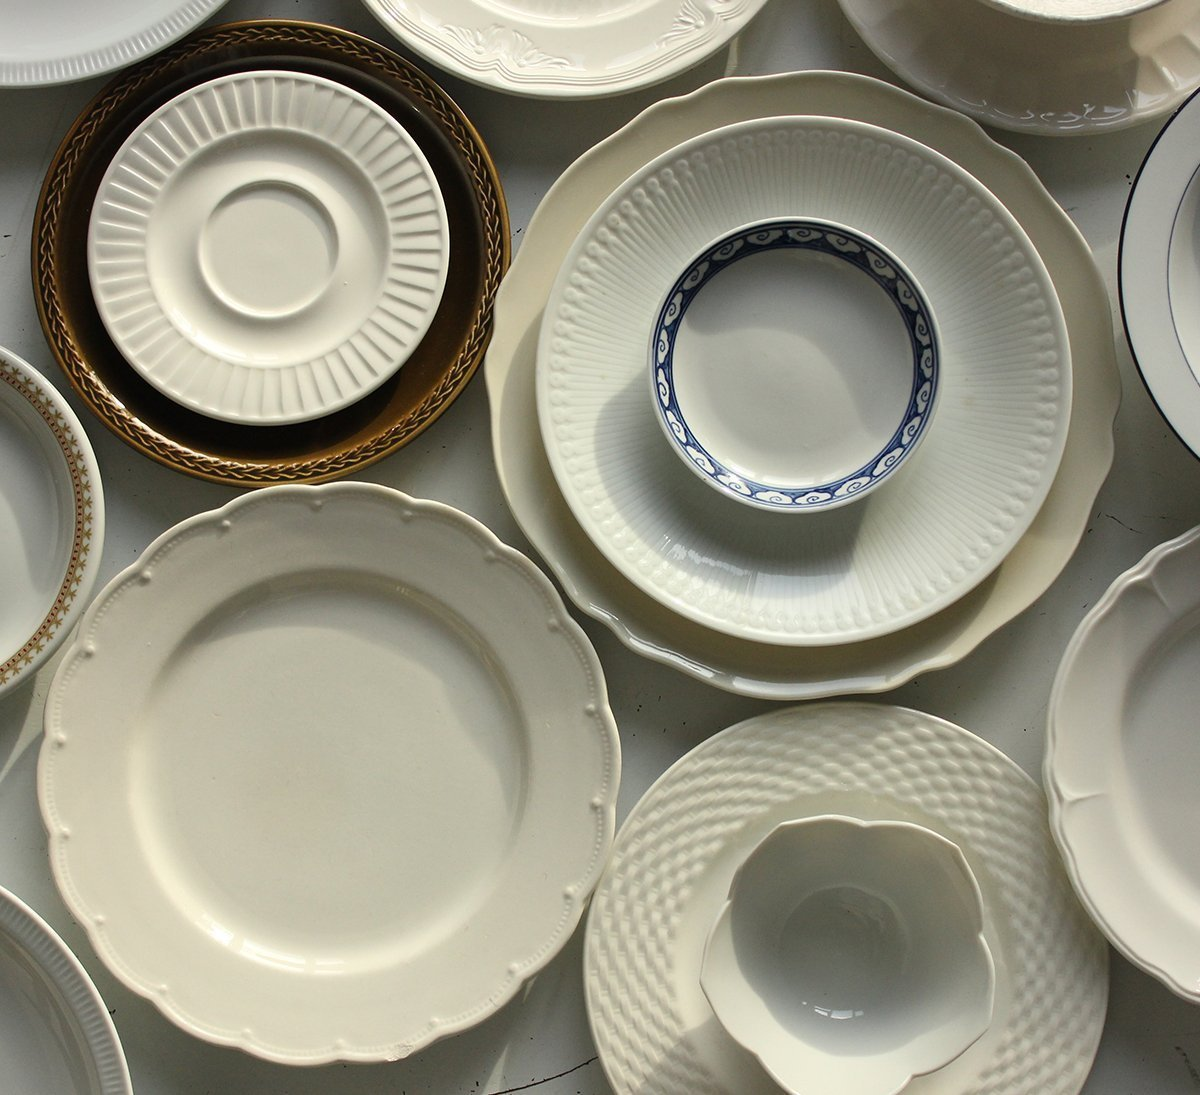 Dinnerware Brands You Need To Know